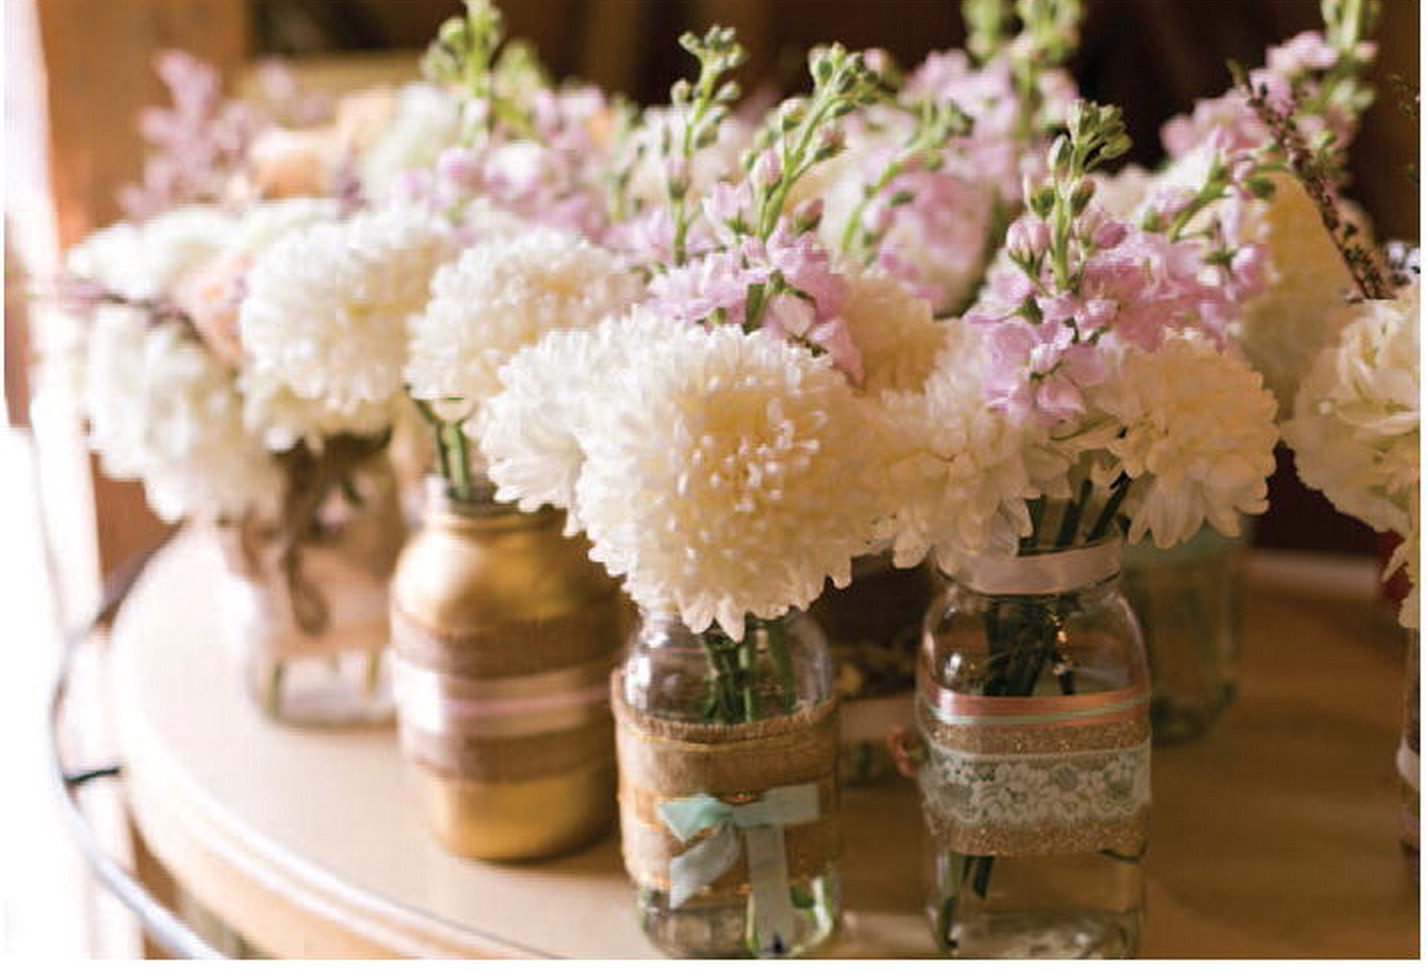 Rustic Bouquets Add Natural Flair To Wedding Celebrations The